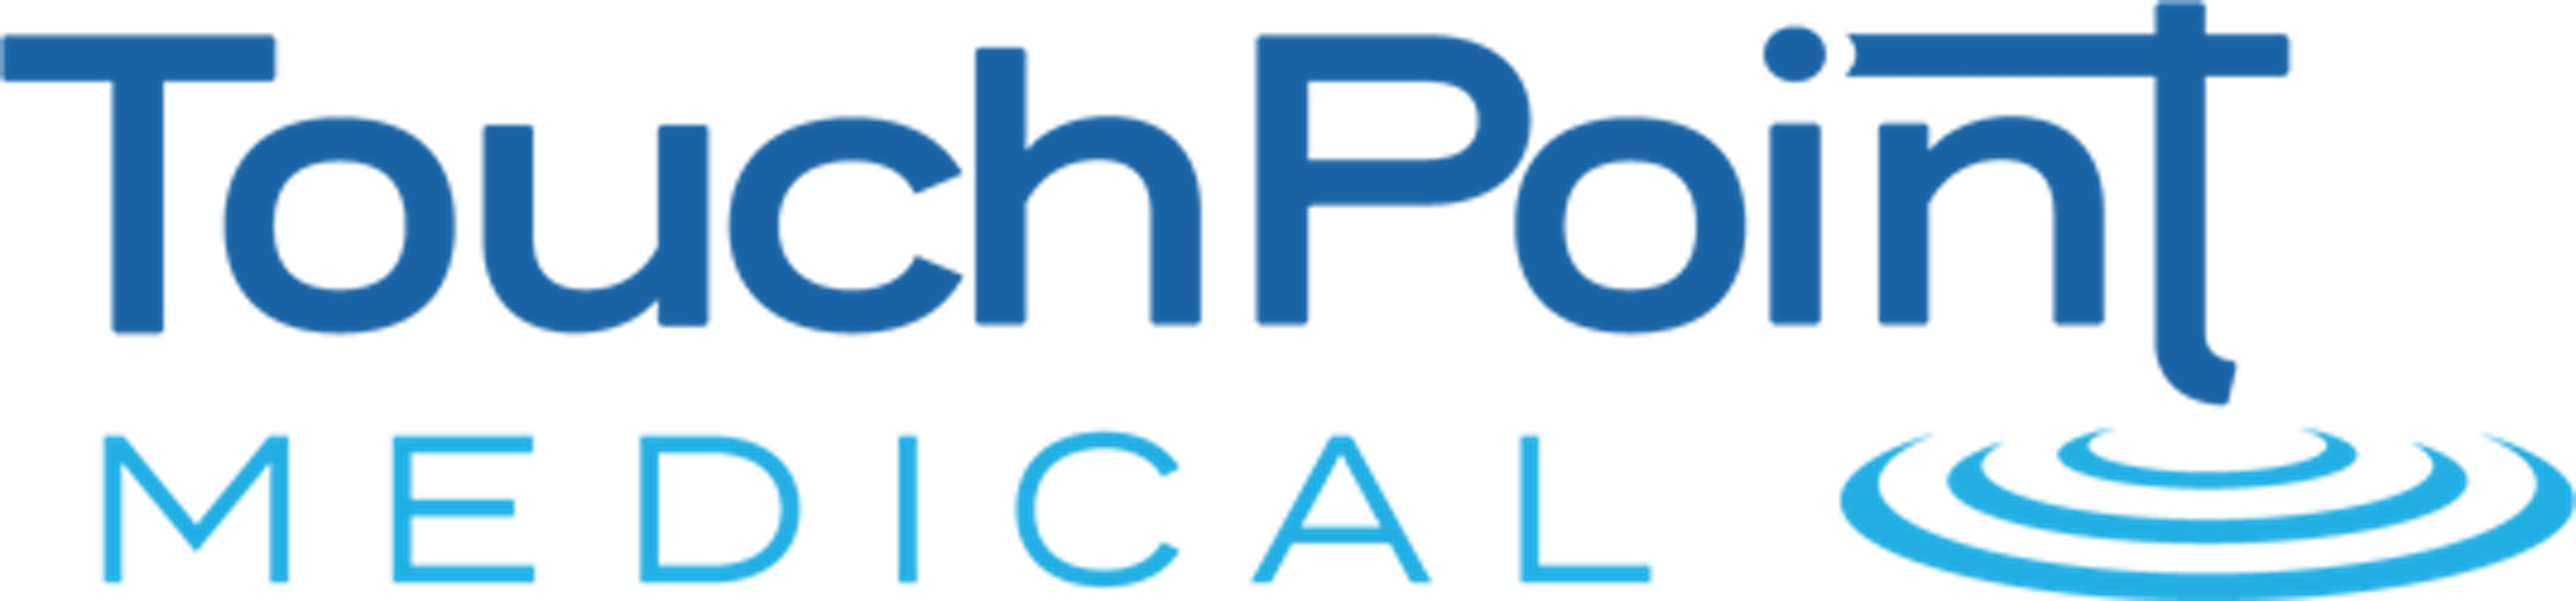 Touchpoint Medical logo